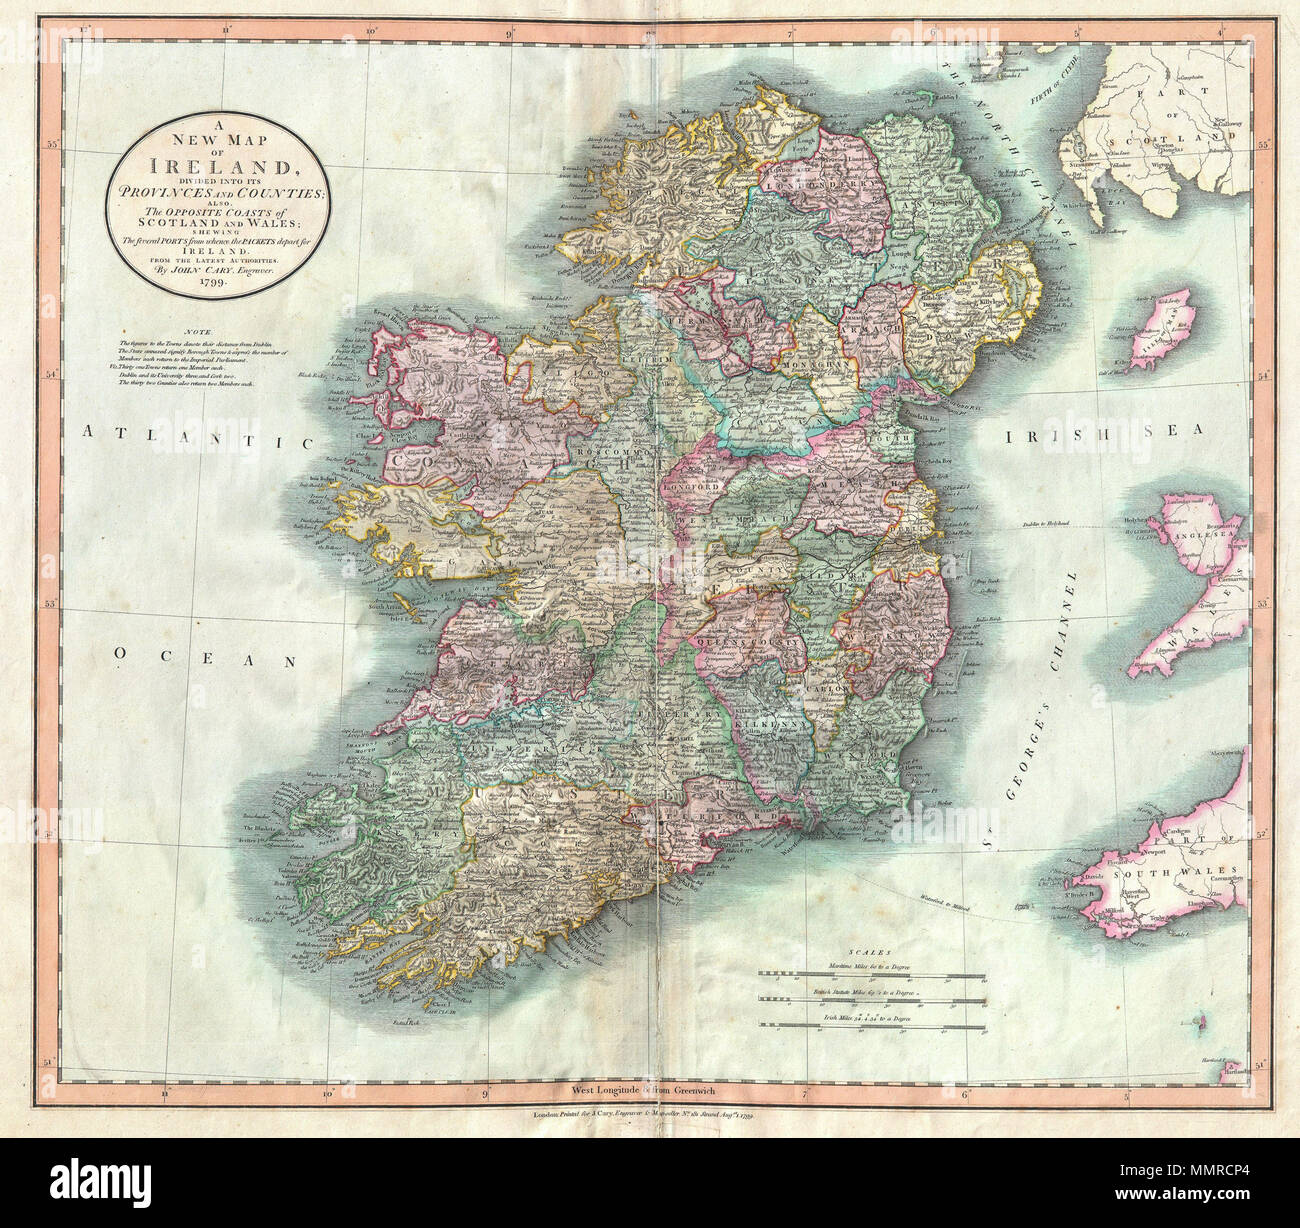 Map Of Ireland With Counties And Provinces.English John Cary S Wonderful 1799 Map Of The Ireland Depicts The